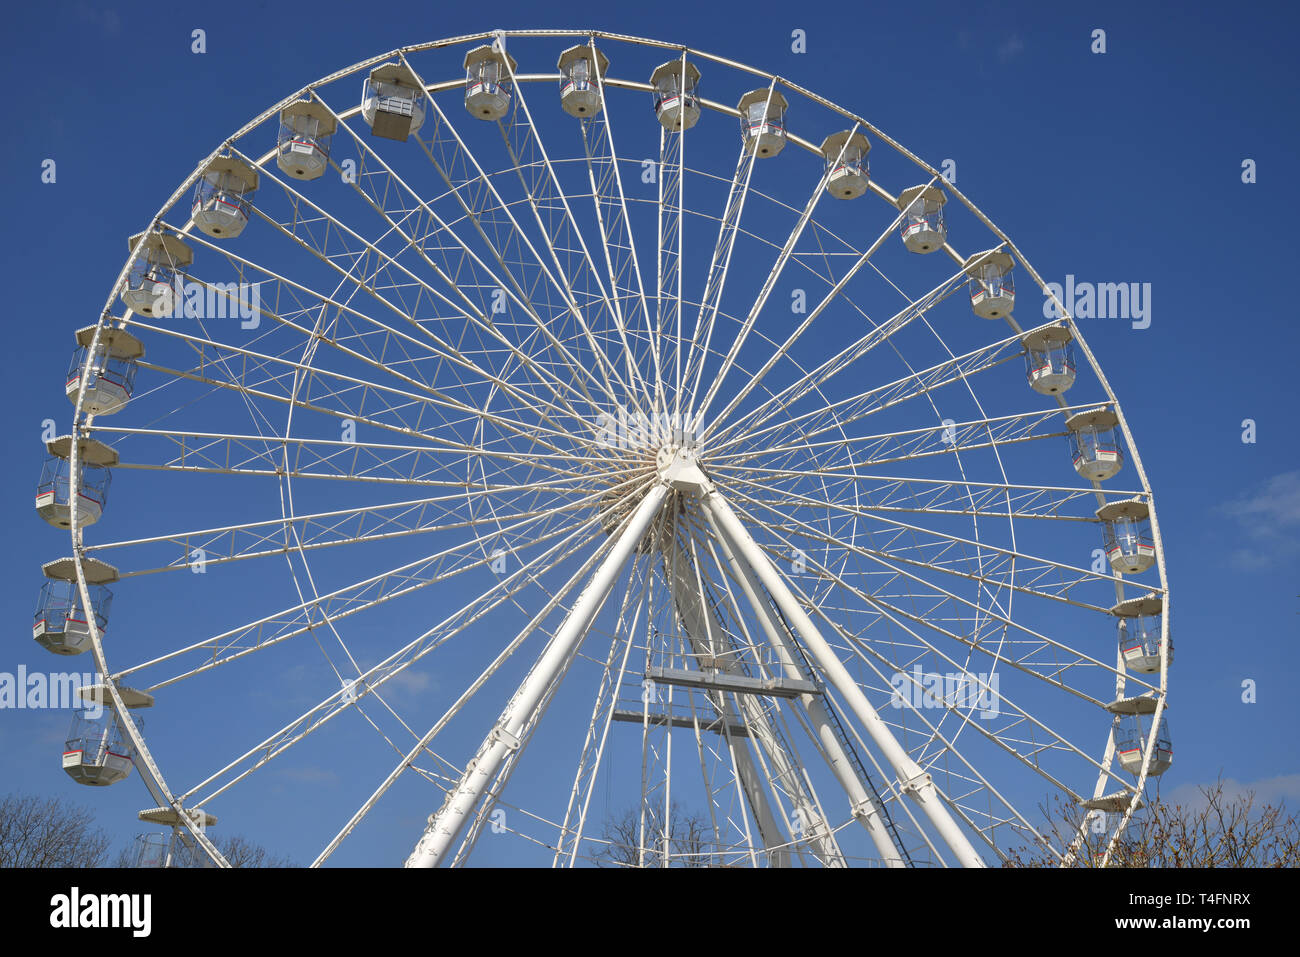 A big wheel or ferris wheel has been constructed on the bank of the River Avon, Stratford upon Avon, Warwickshire Stock Photo